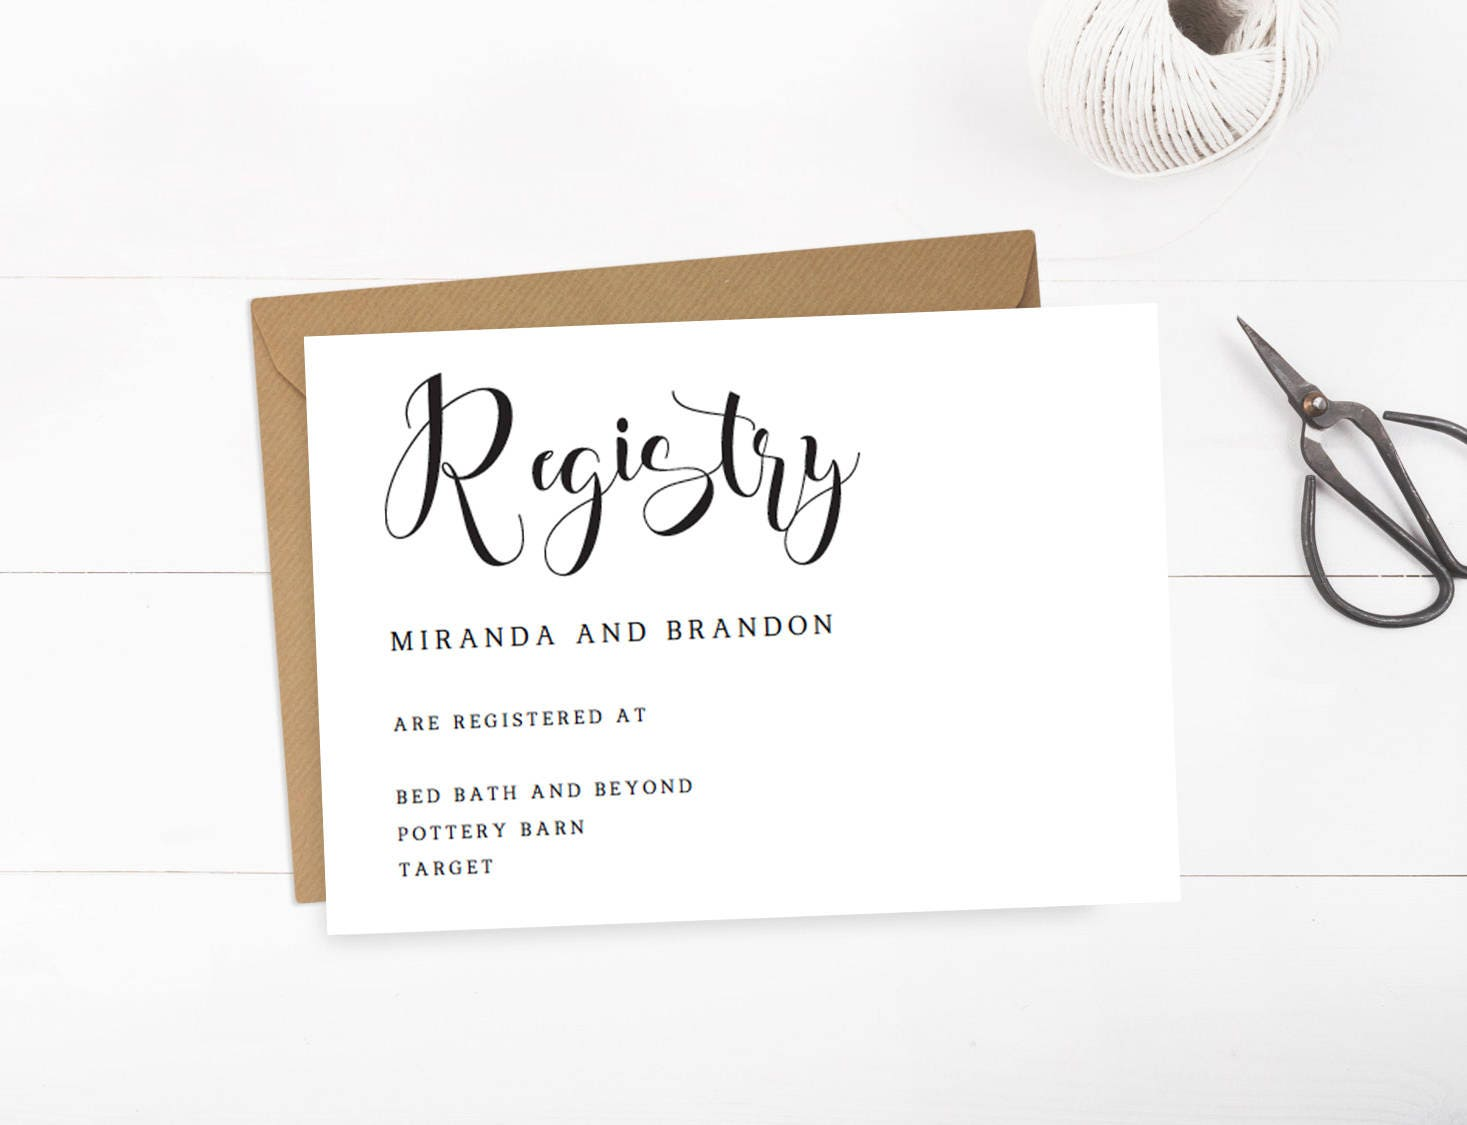 How Many Gifts To Register For Wedding: Wedding Registry Cards Baby Registry Card Gift Registry Card